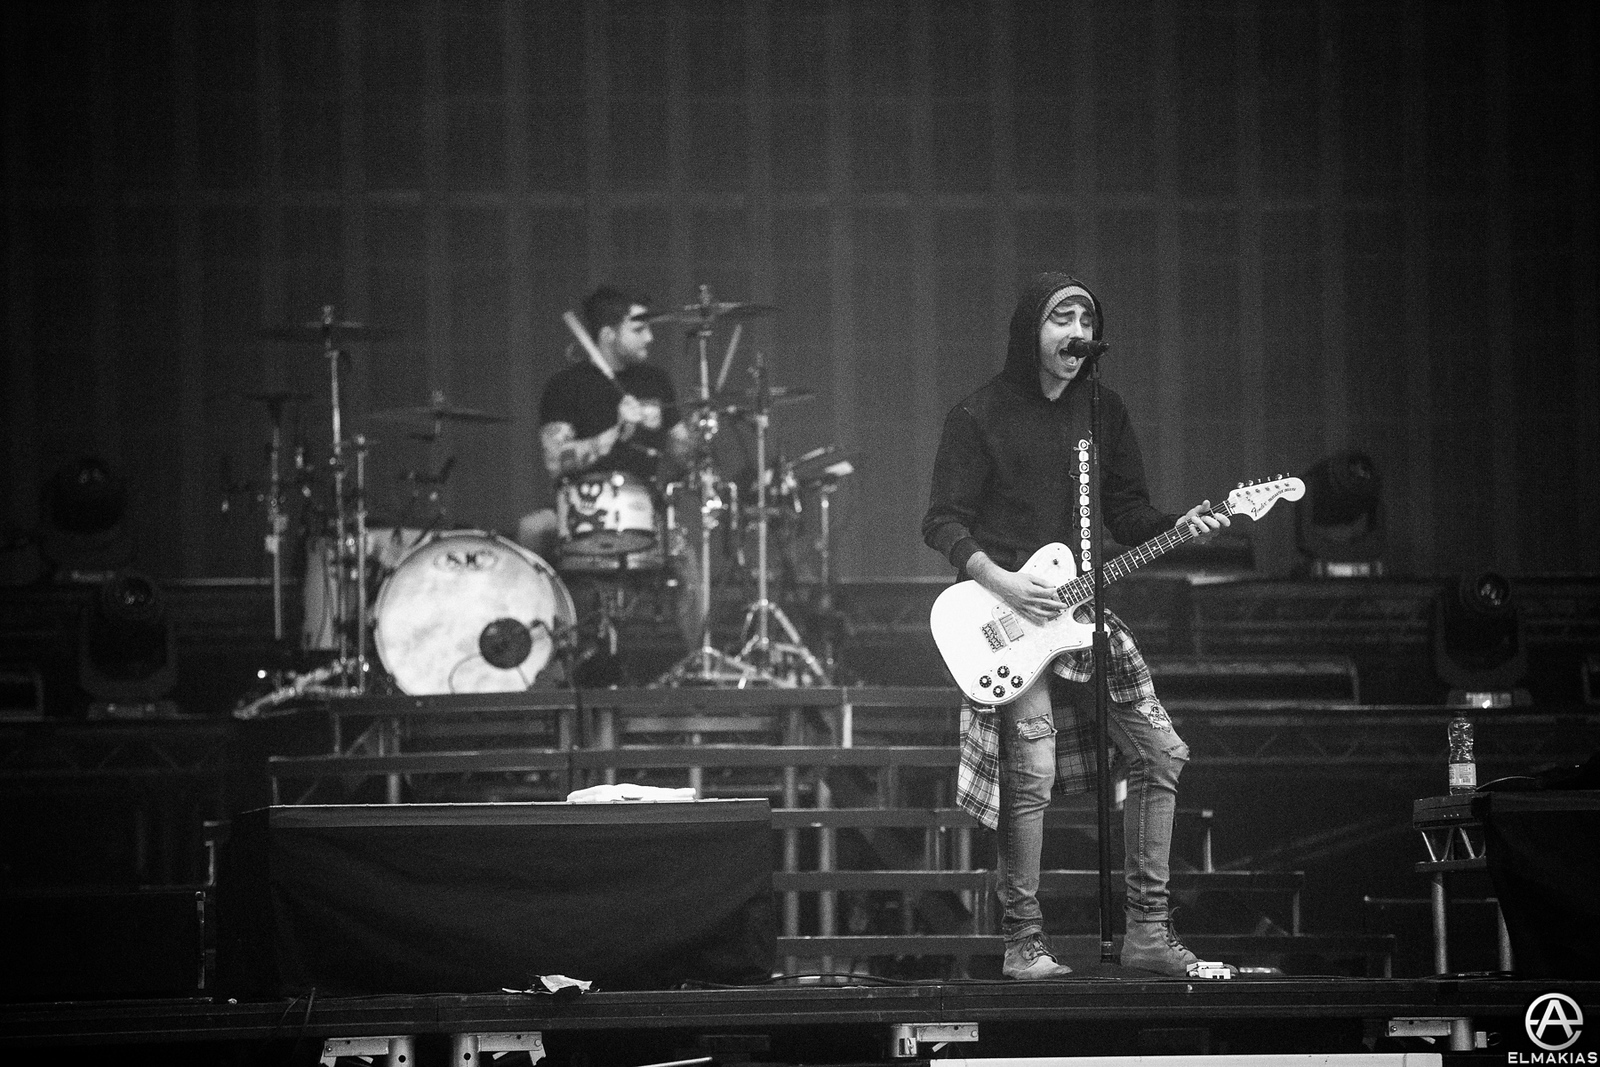 Alex and Rian of All Time Low practicing